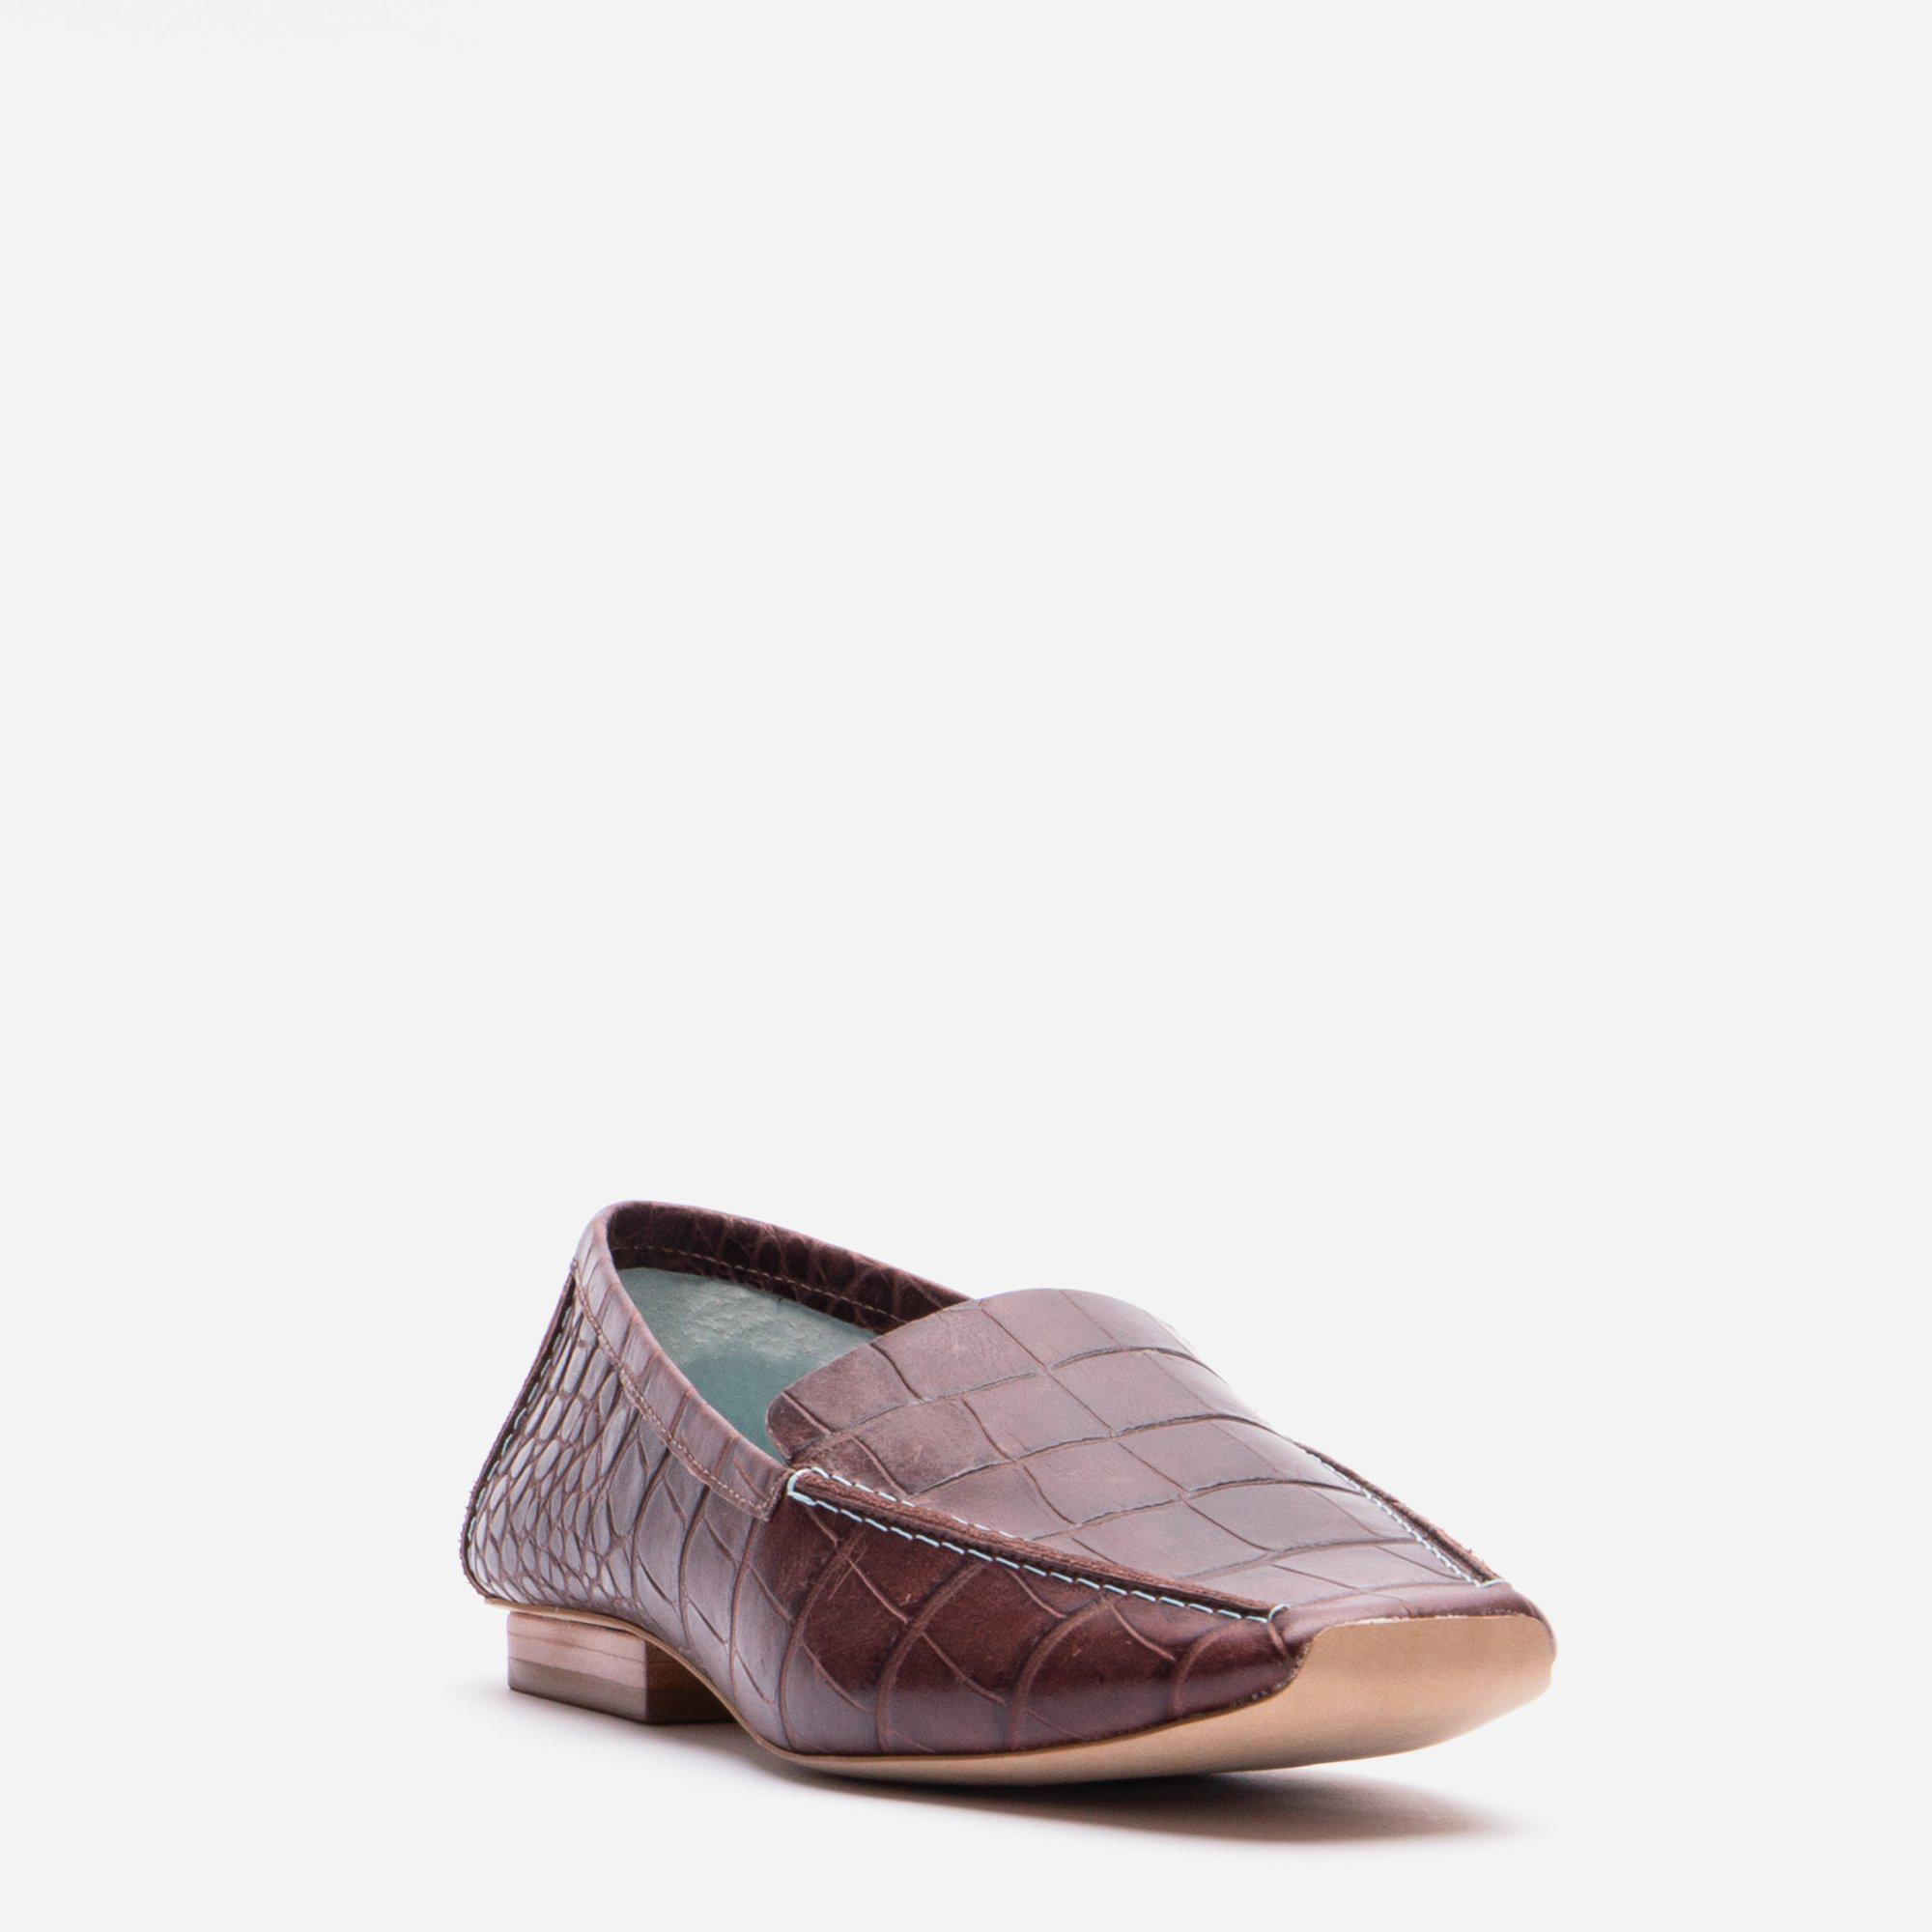 Elyce Loafer Croc Embossed Chocolate 1